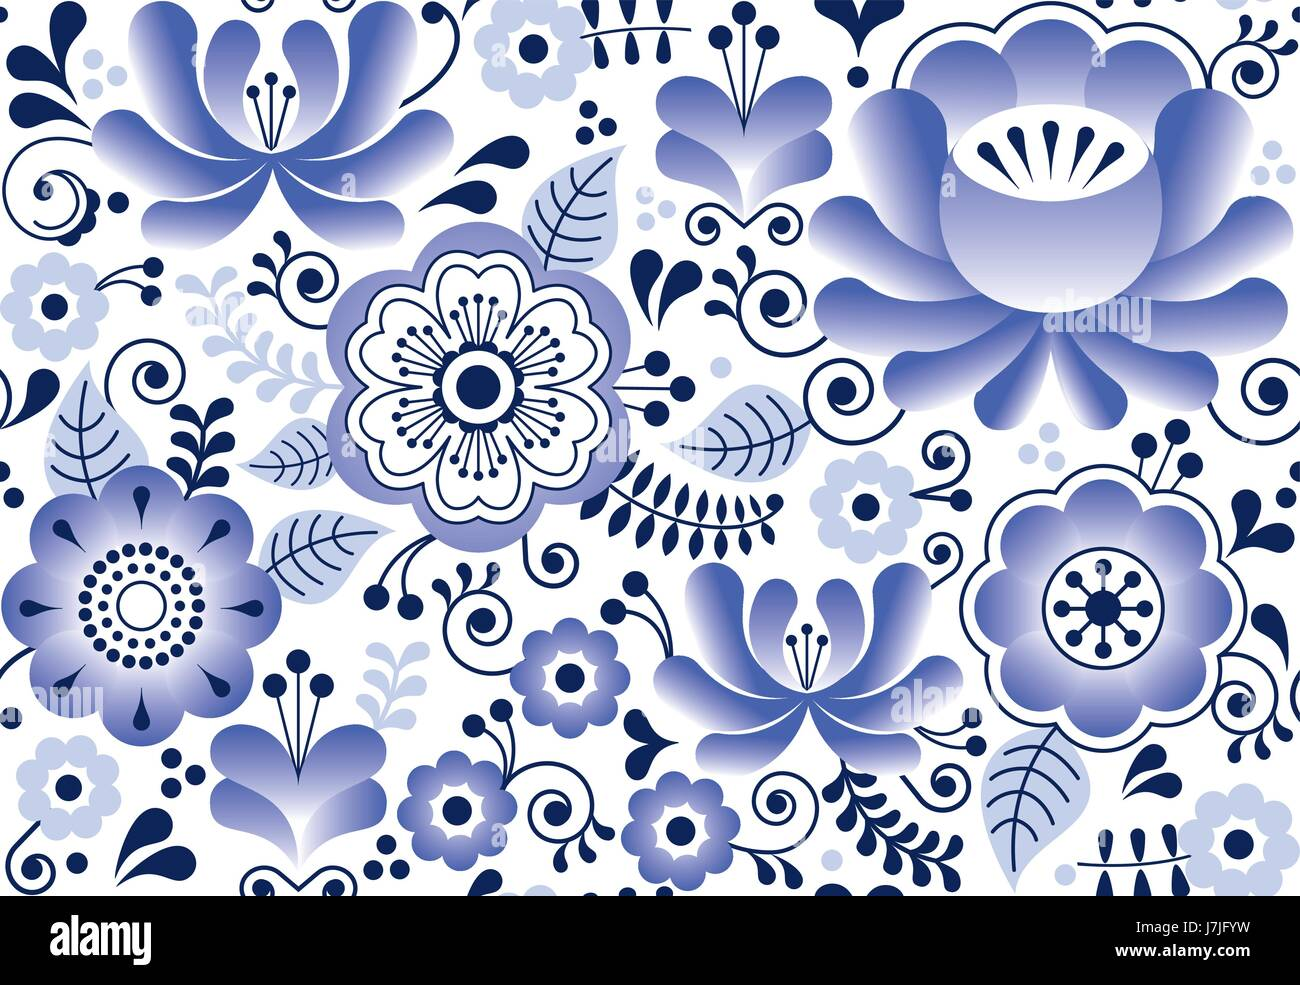 Artistic floral element abstract gzhel folk art blue flowers stock - Gzhel Seamless Pattern Russian Folk Art Design Retro Ceramics Style Gzhel Seamless Pattern